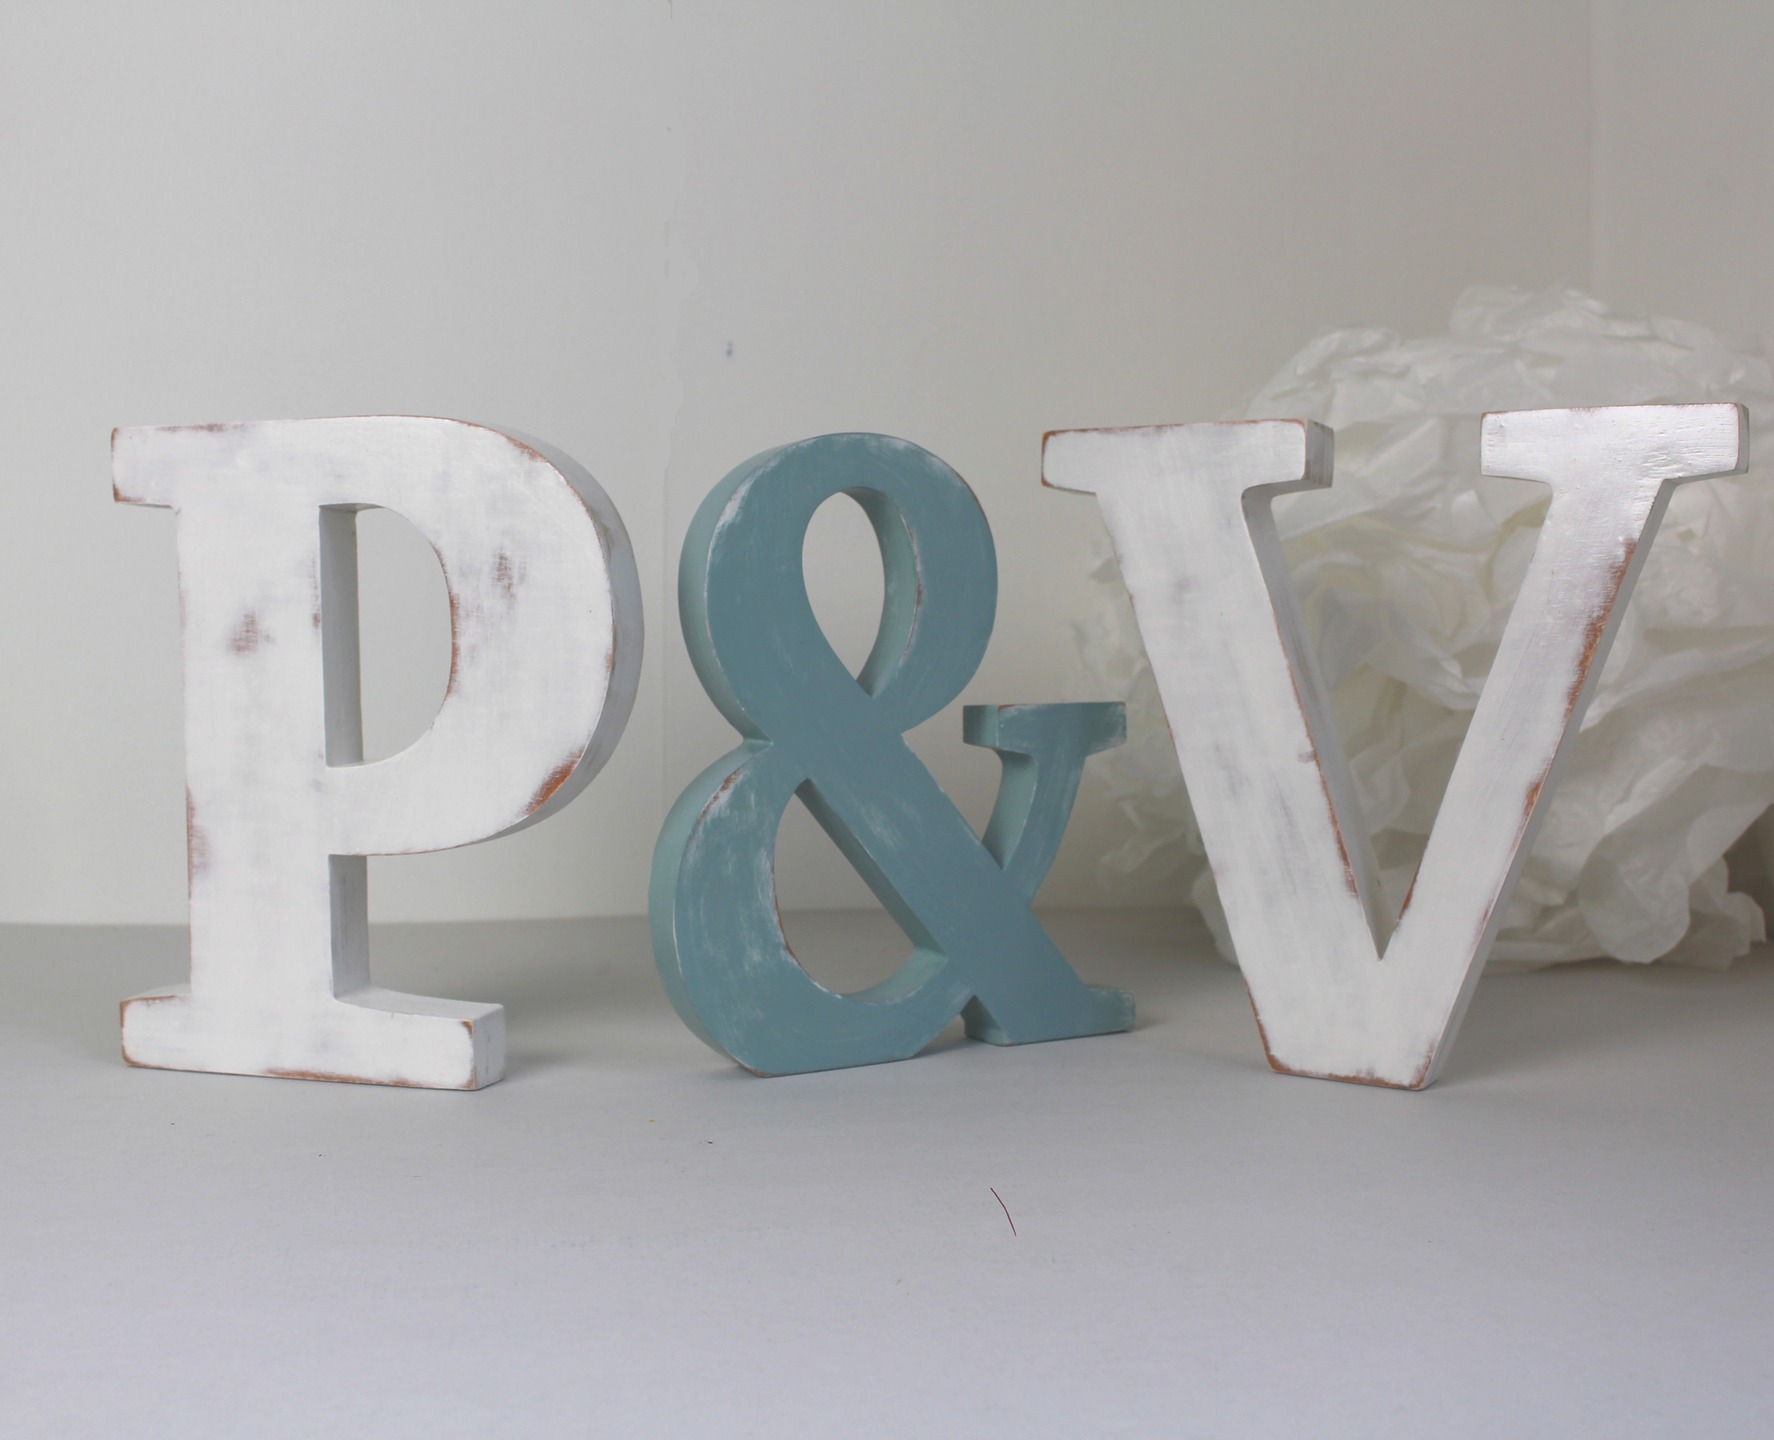 lettres en bois p v poser bleu baltique et blanc mariage d coration. Black Bedroom Furniture Sets. Home Design Ideas